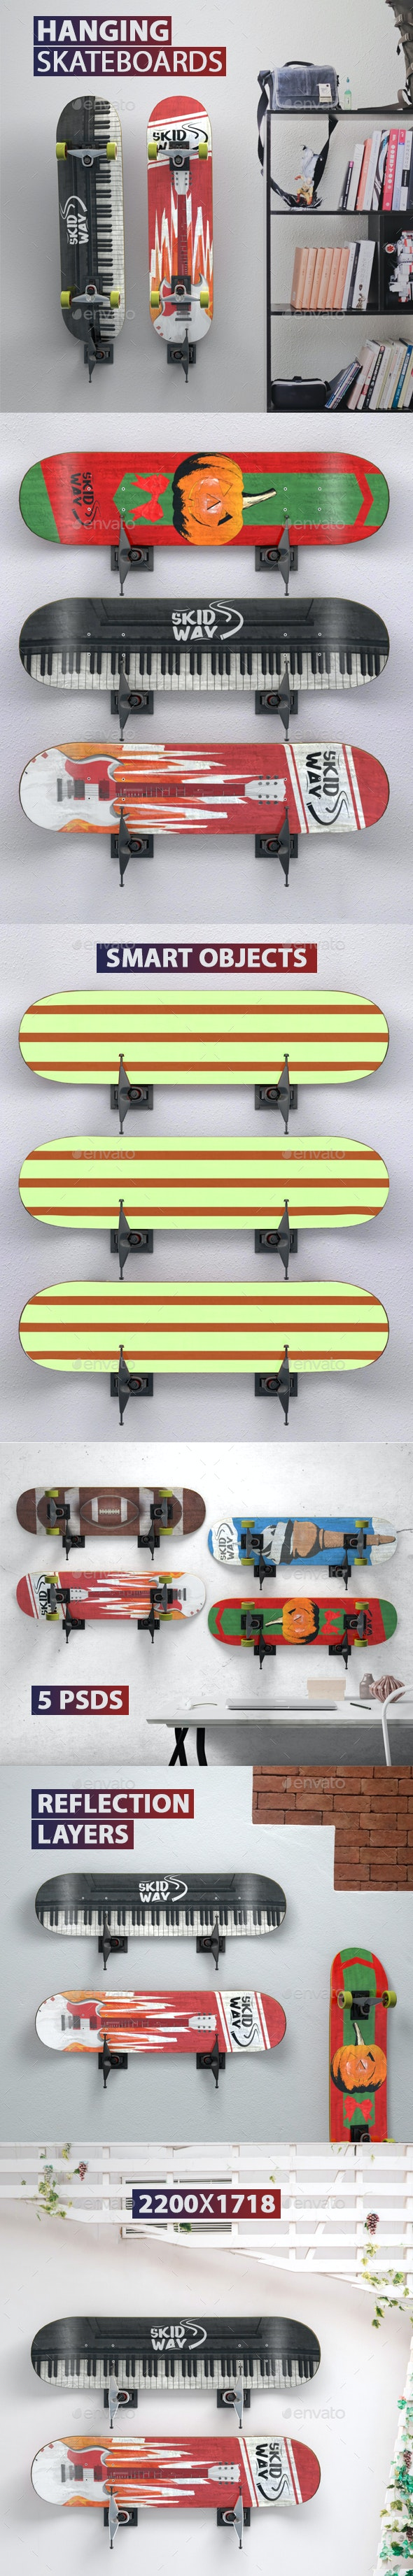 Hanging Skateboards PSD Mock-ups